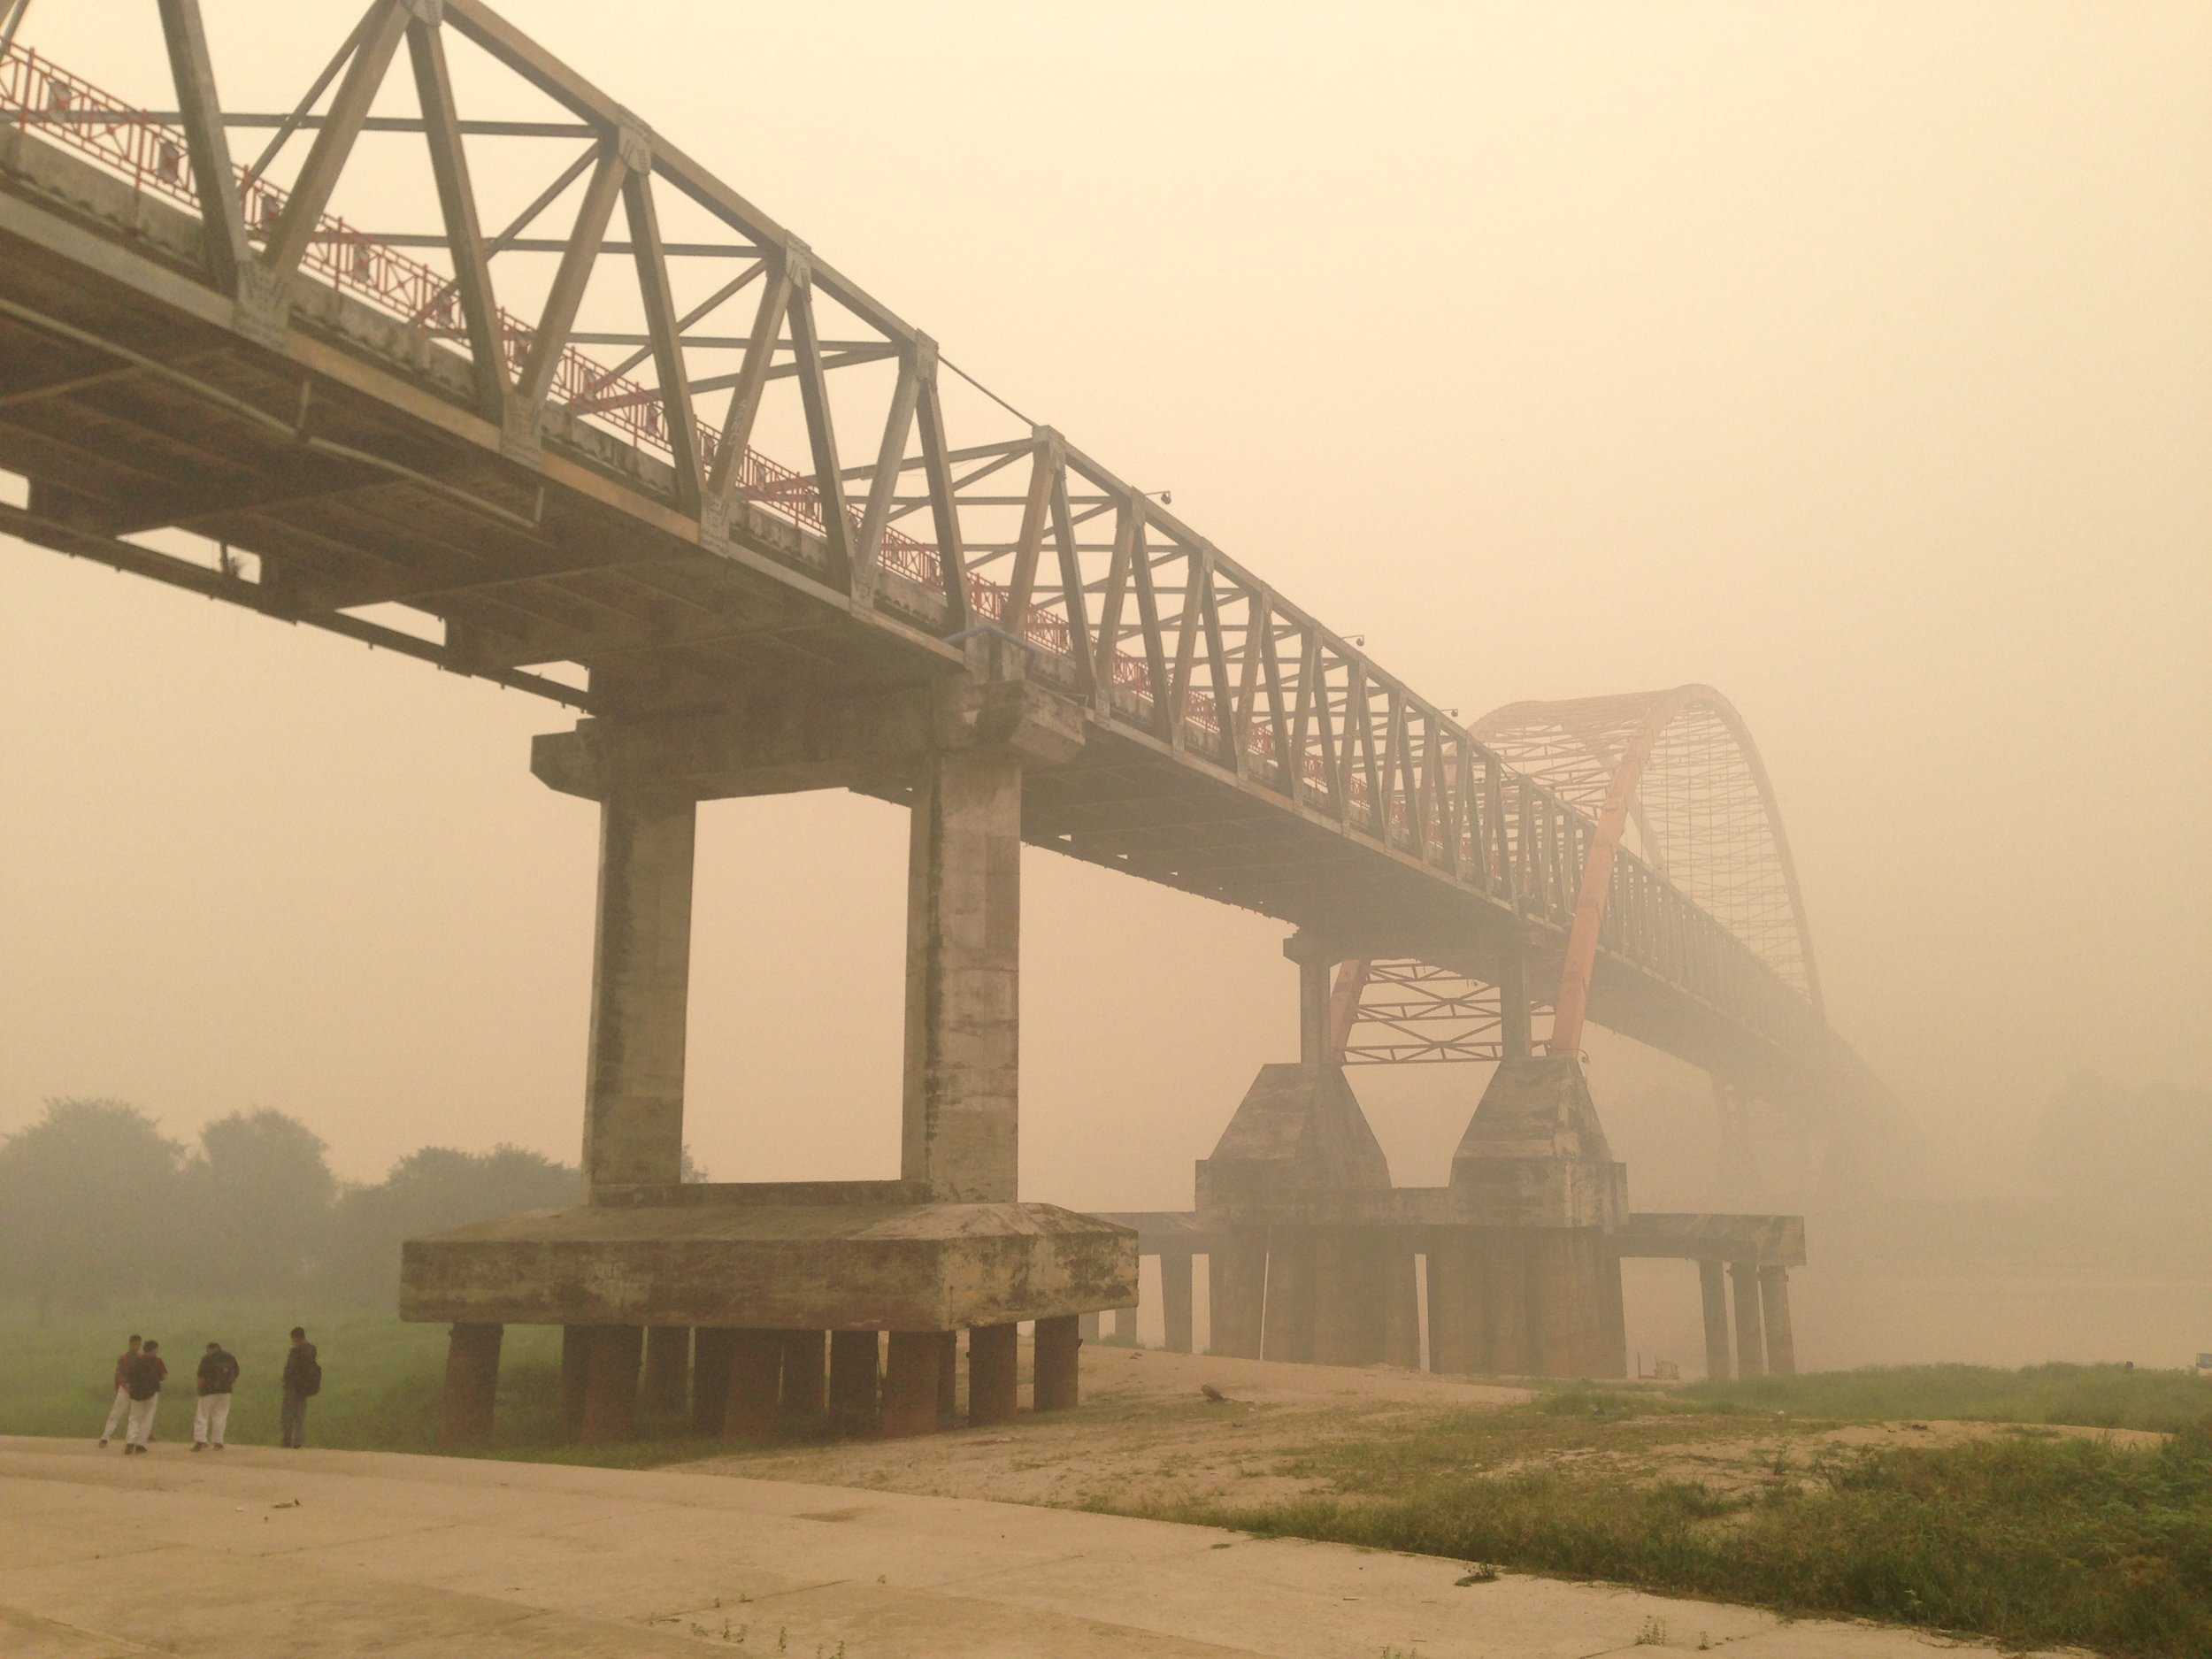 """Photo of Kahayan bridge in Palangka Raya during the peak of the fires in September 2015. This """"haze"""" filled the air for months, causing widespread sickness, slow crop growth, and closed businesses and schools.  Photo by GAMBUT staff Sherry Panggabean."""